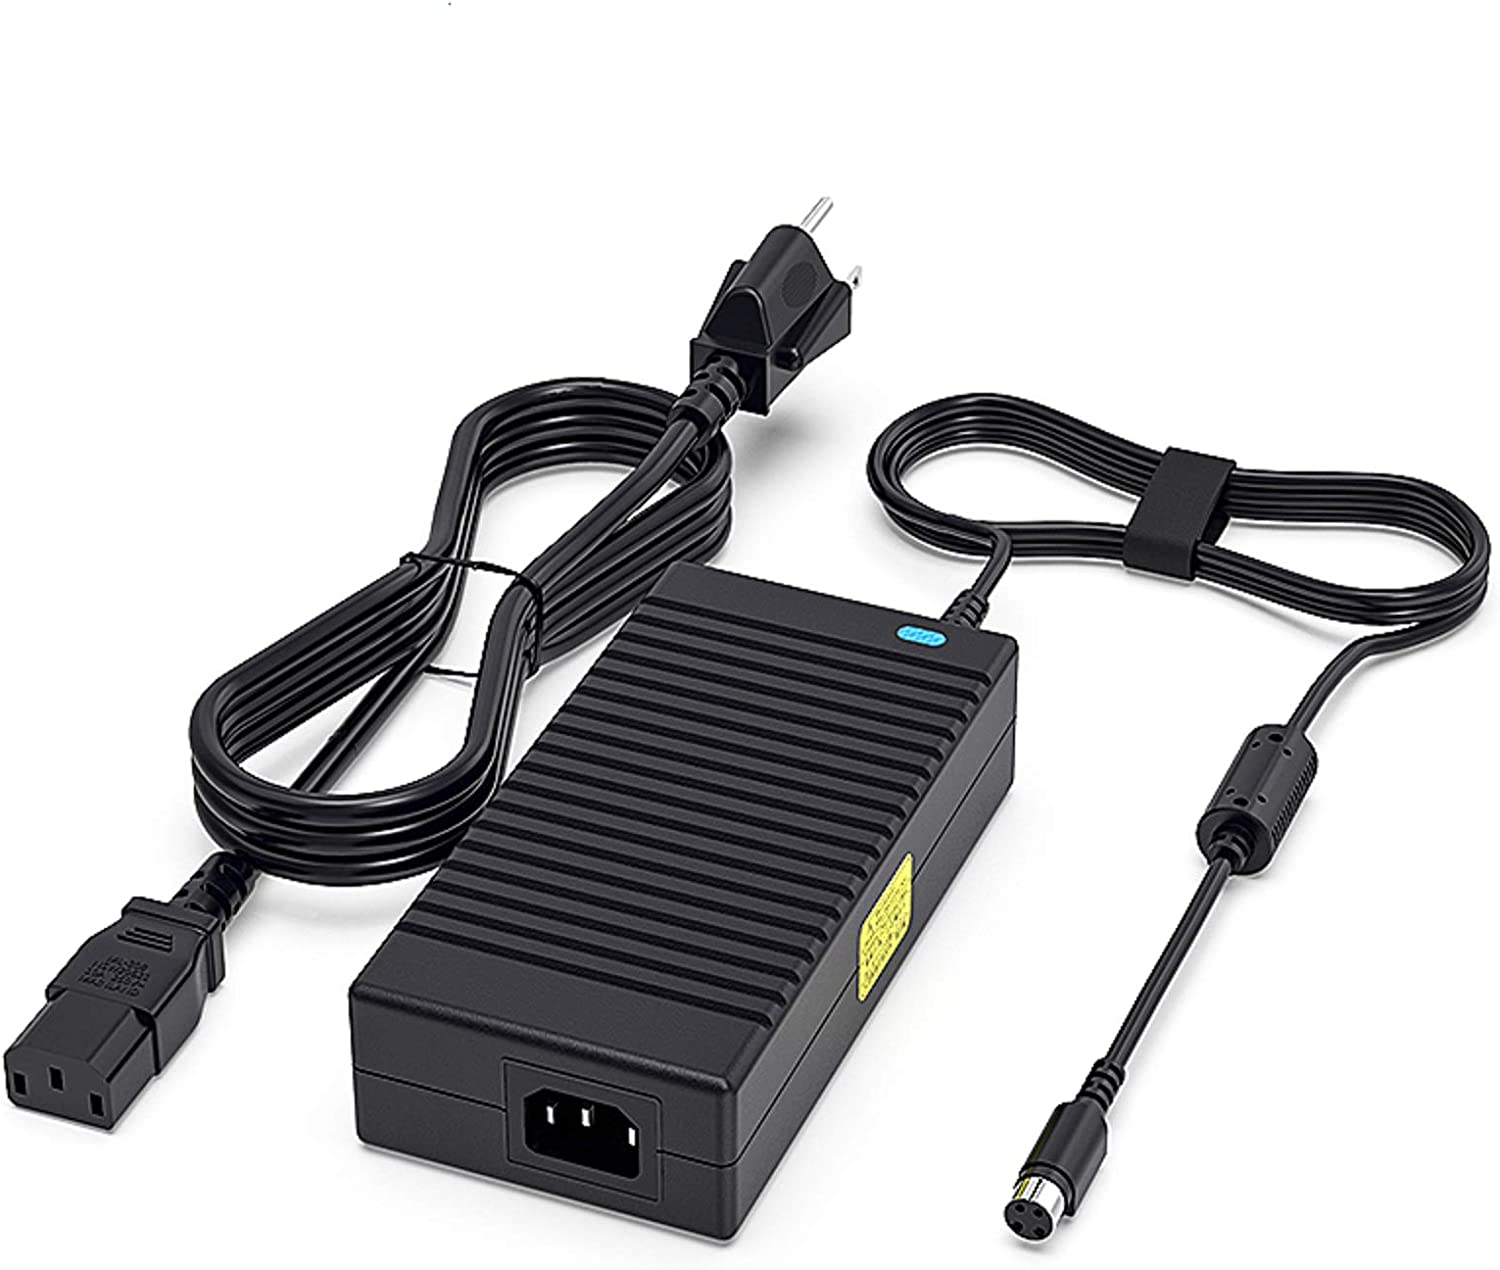 Delippo 19V 9.5A 180W 4 Pin Laptop Charger for Toshiba Qosmio X75 X70 X875 X870 X775 X770 X505 X500 X305; X875-Q7390 X75-A7298 X75-A7295 X70-ABT3G22 X875-Q7190